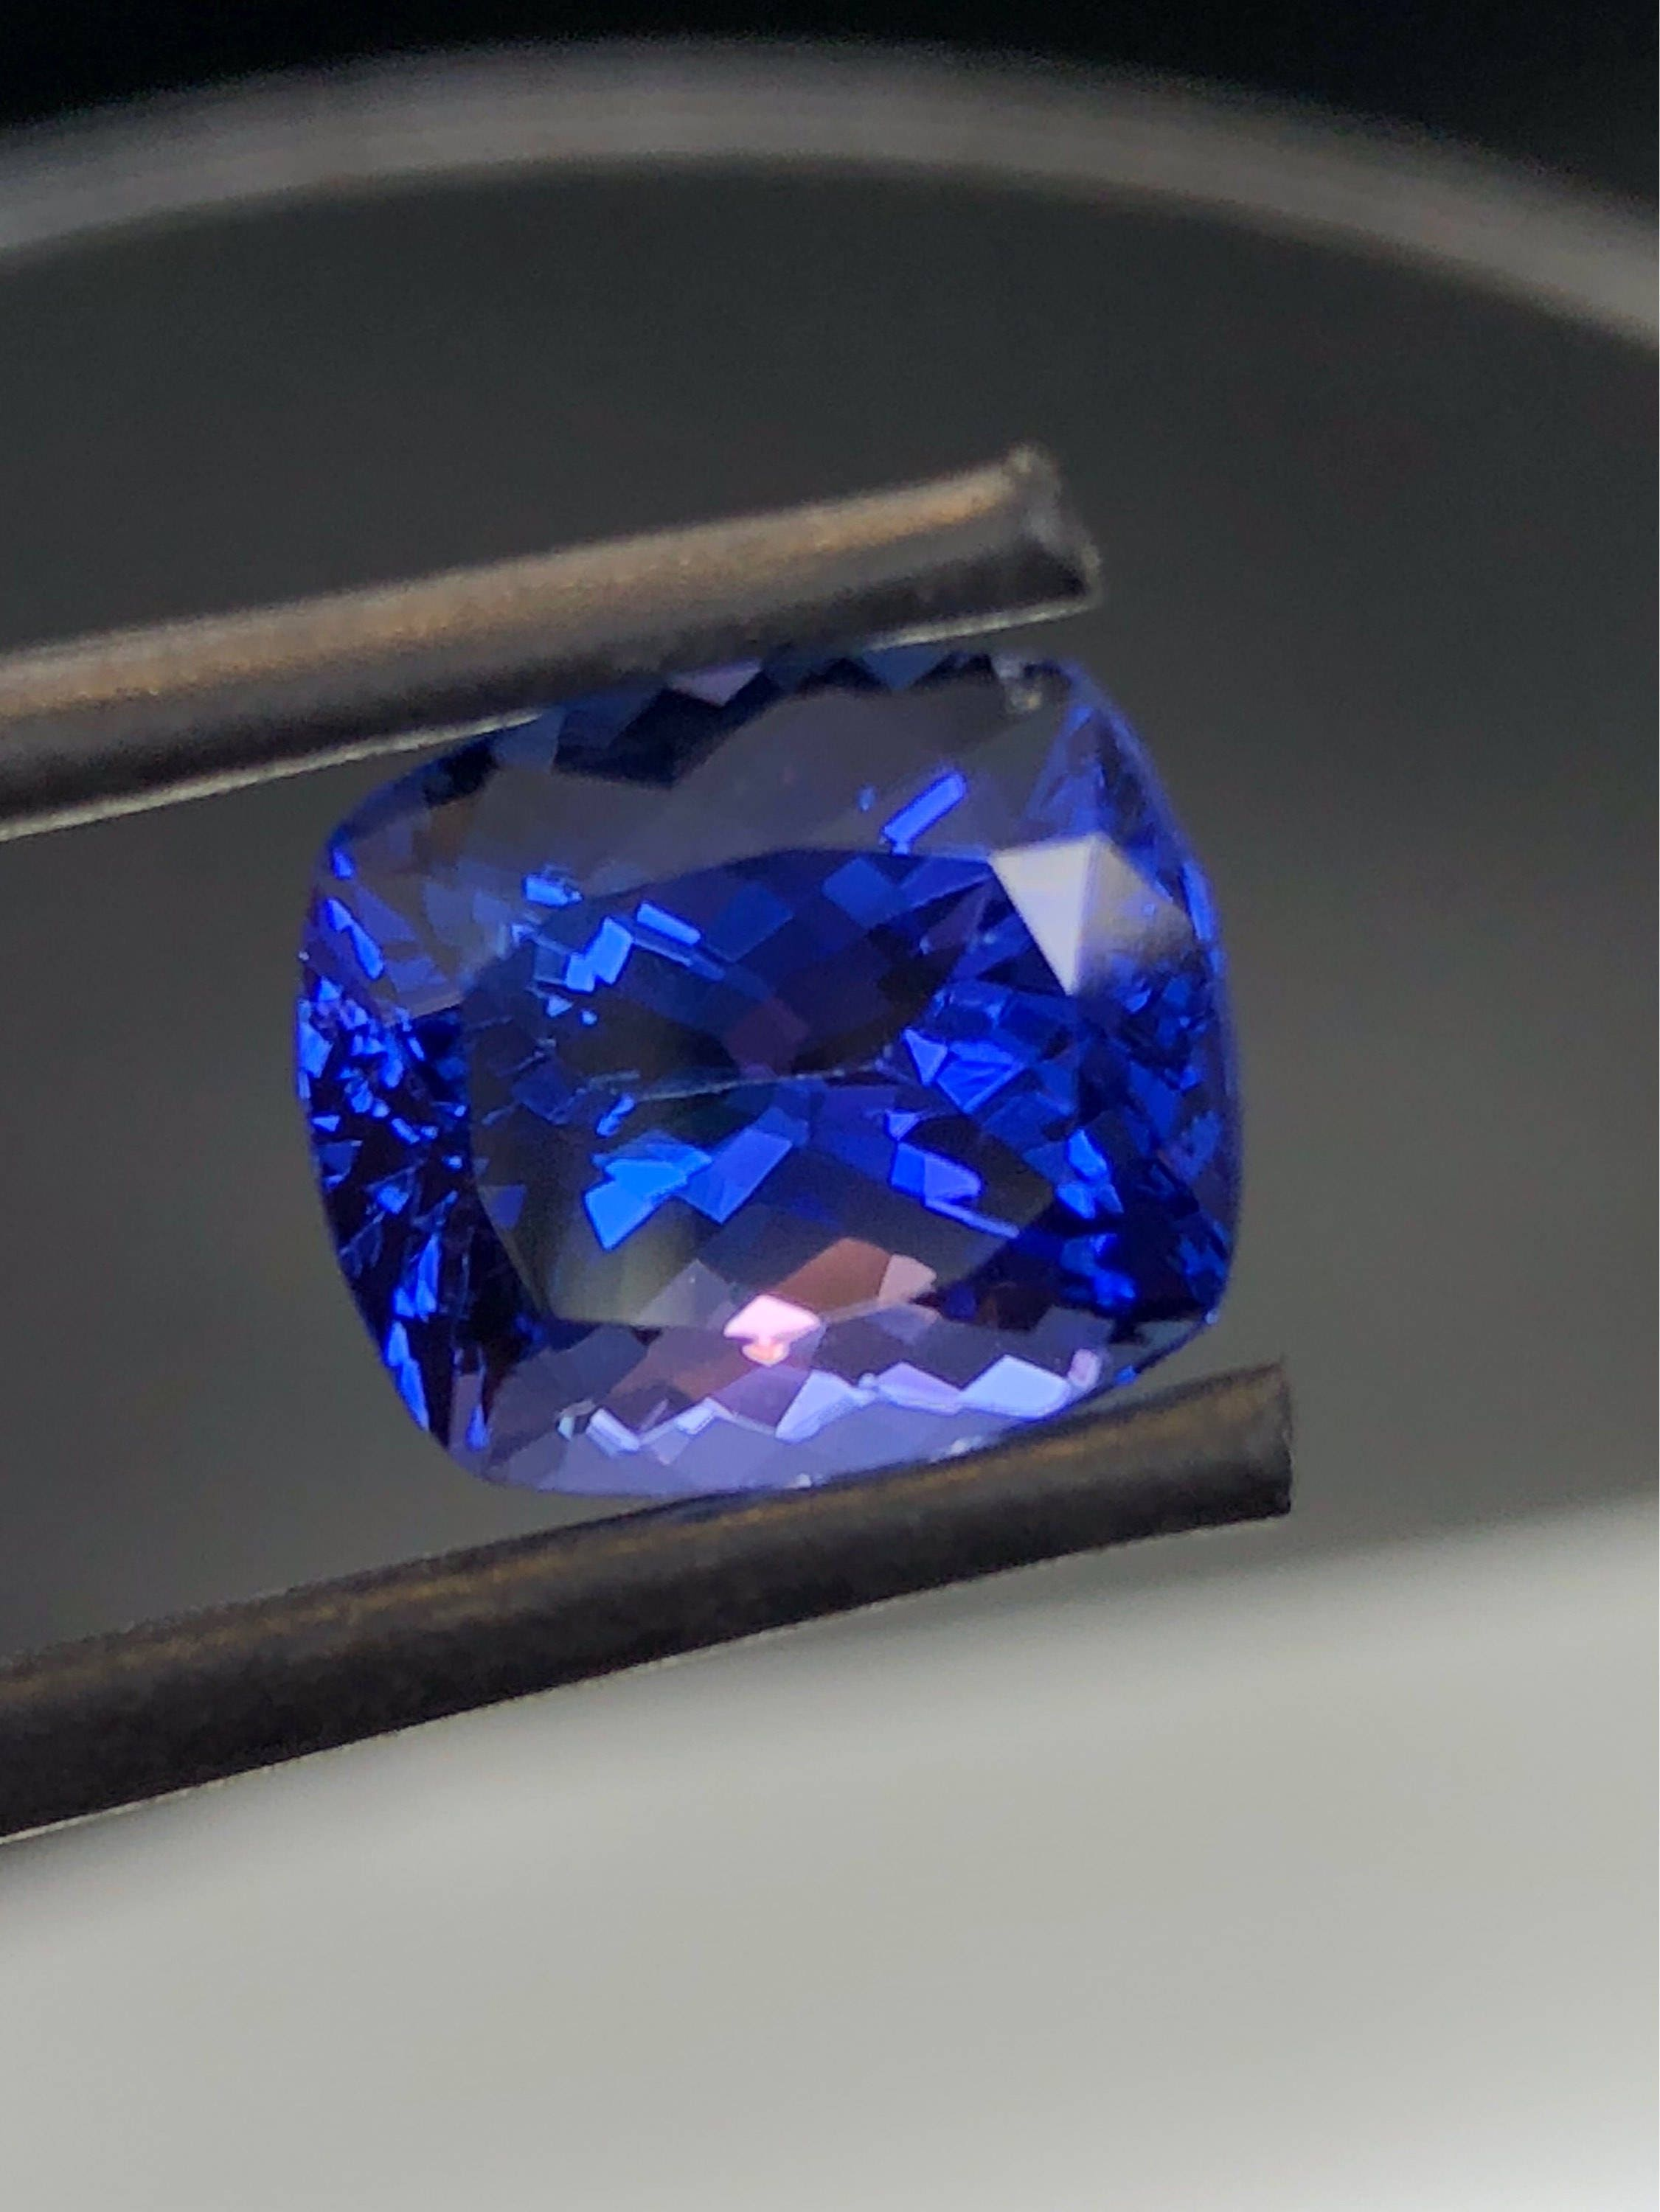 aaa gem il piece tanzanite large flawless collectors rare grade listing sapphire fullxfull trillion blue